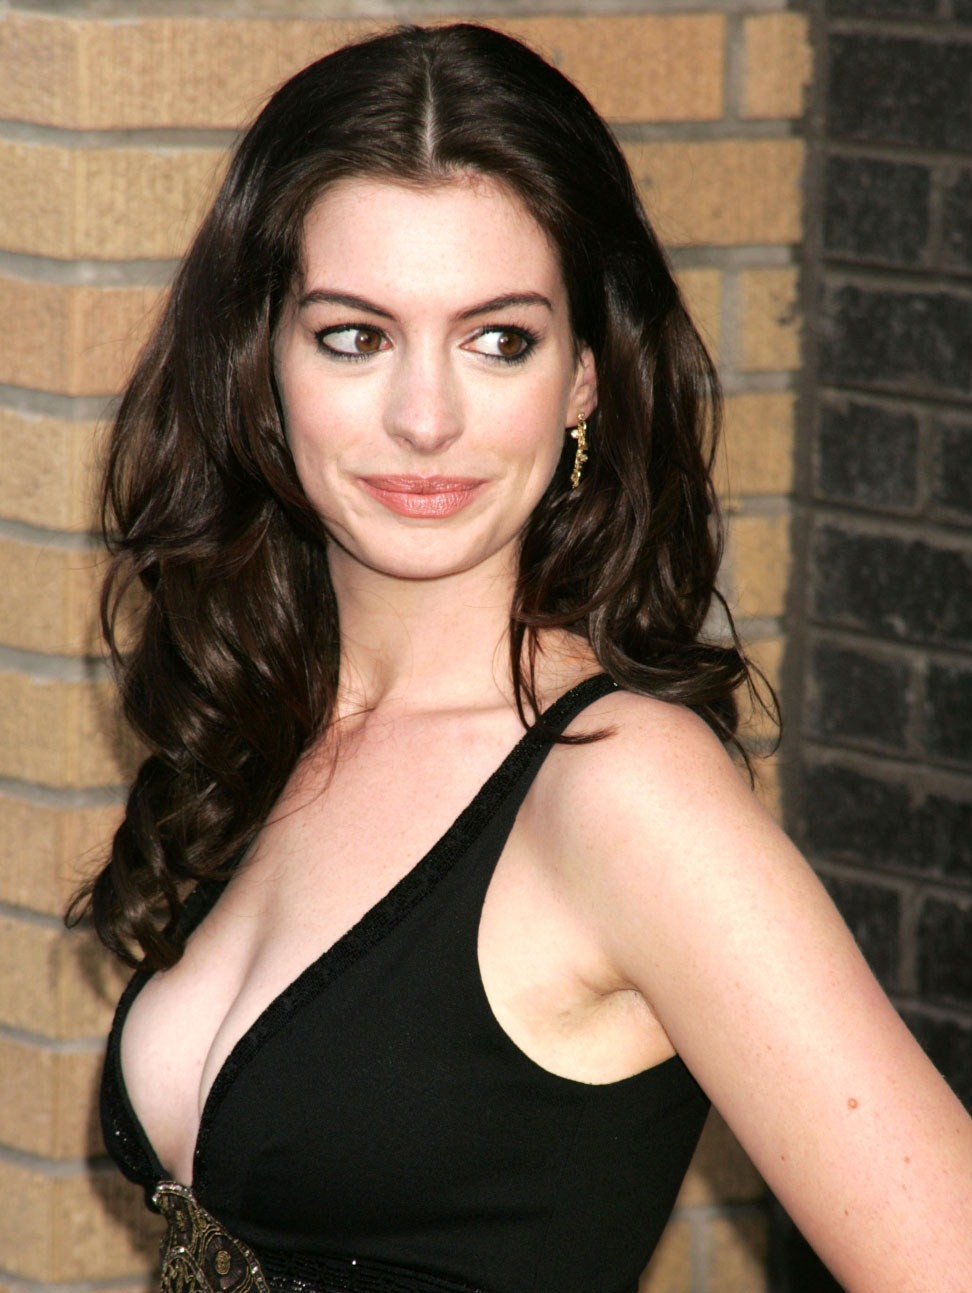 Anne Hathaway Profile And Latest Pictures 2013